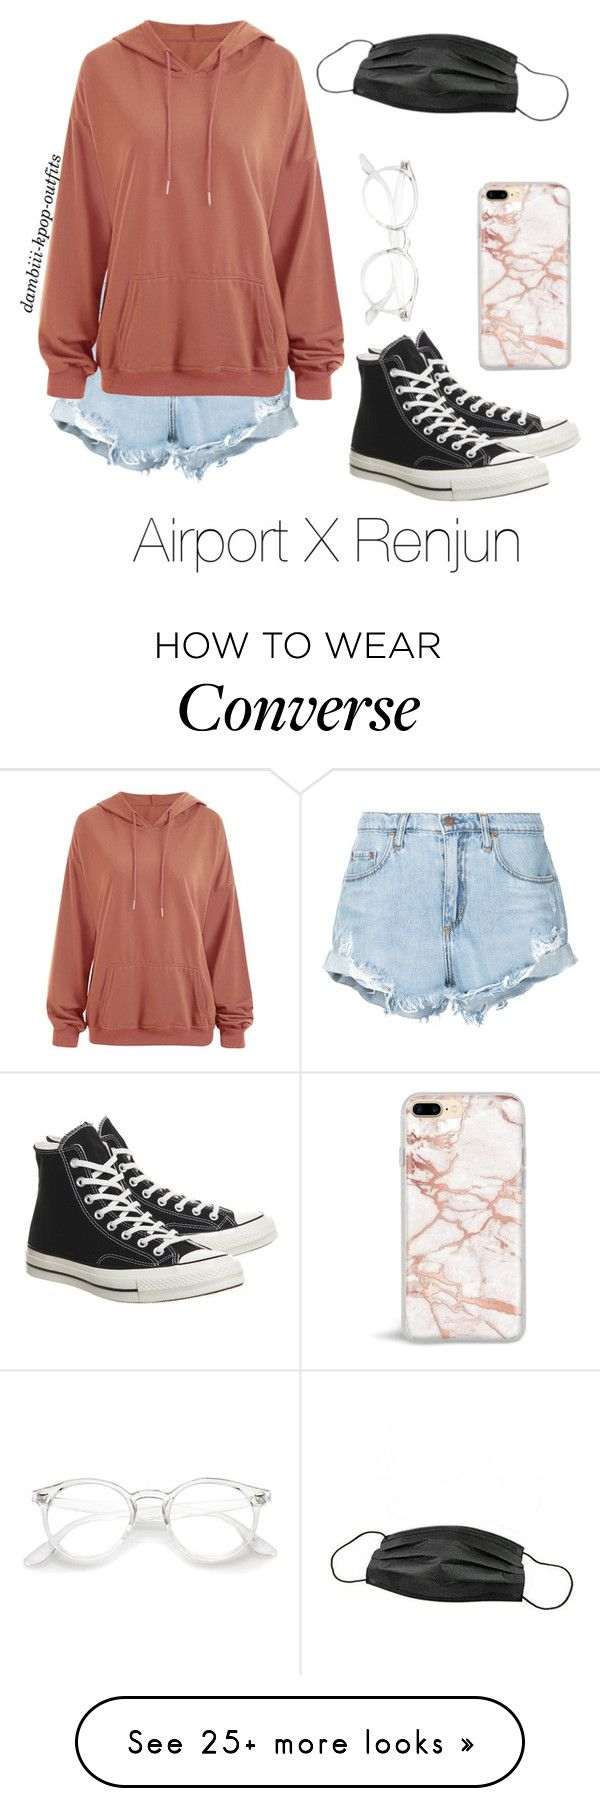 """Airport X Renjun"" by dambiii on Polyvore featuring Nobody Denim and Converse"